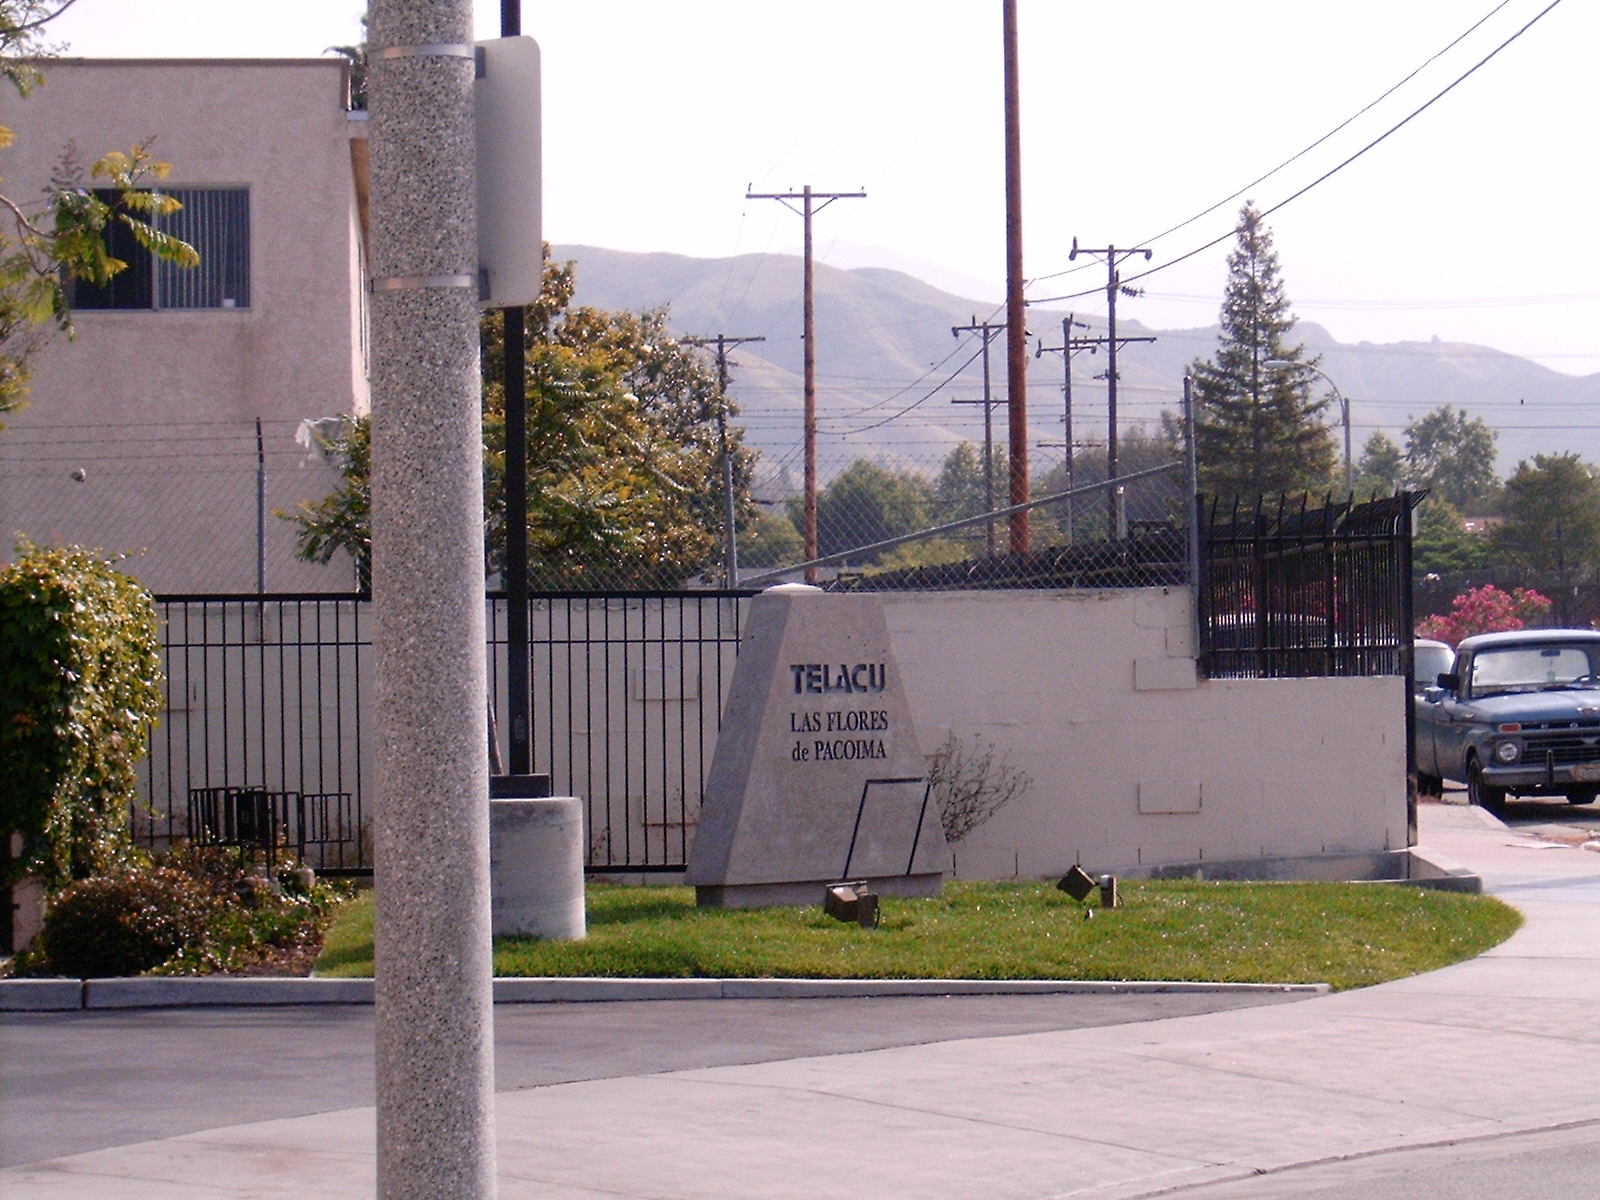 "Corner view of the building, concrete standing stone with the building's name ""Telacu Las Flores de Pacoima"", old blue parked truck, grass and plants in front of the gated building."